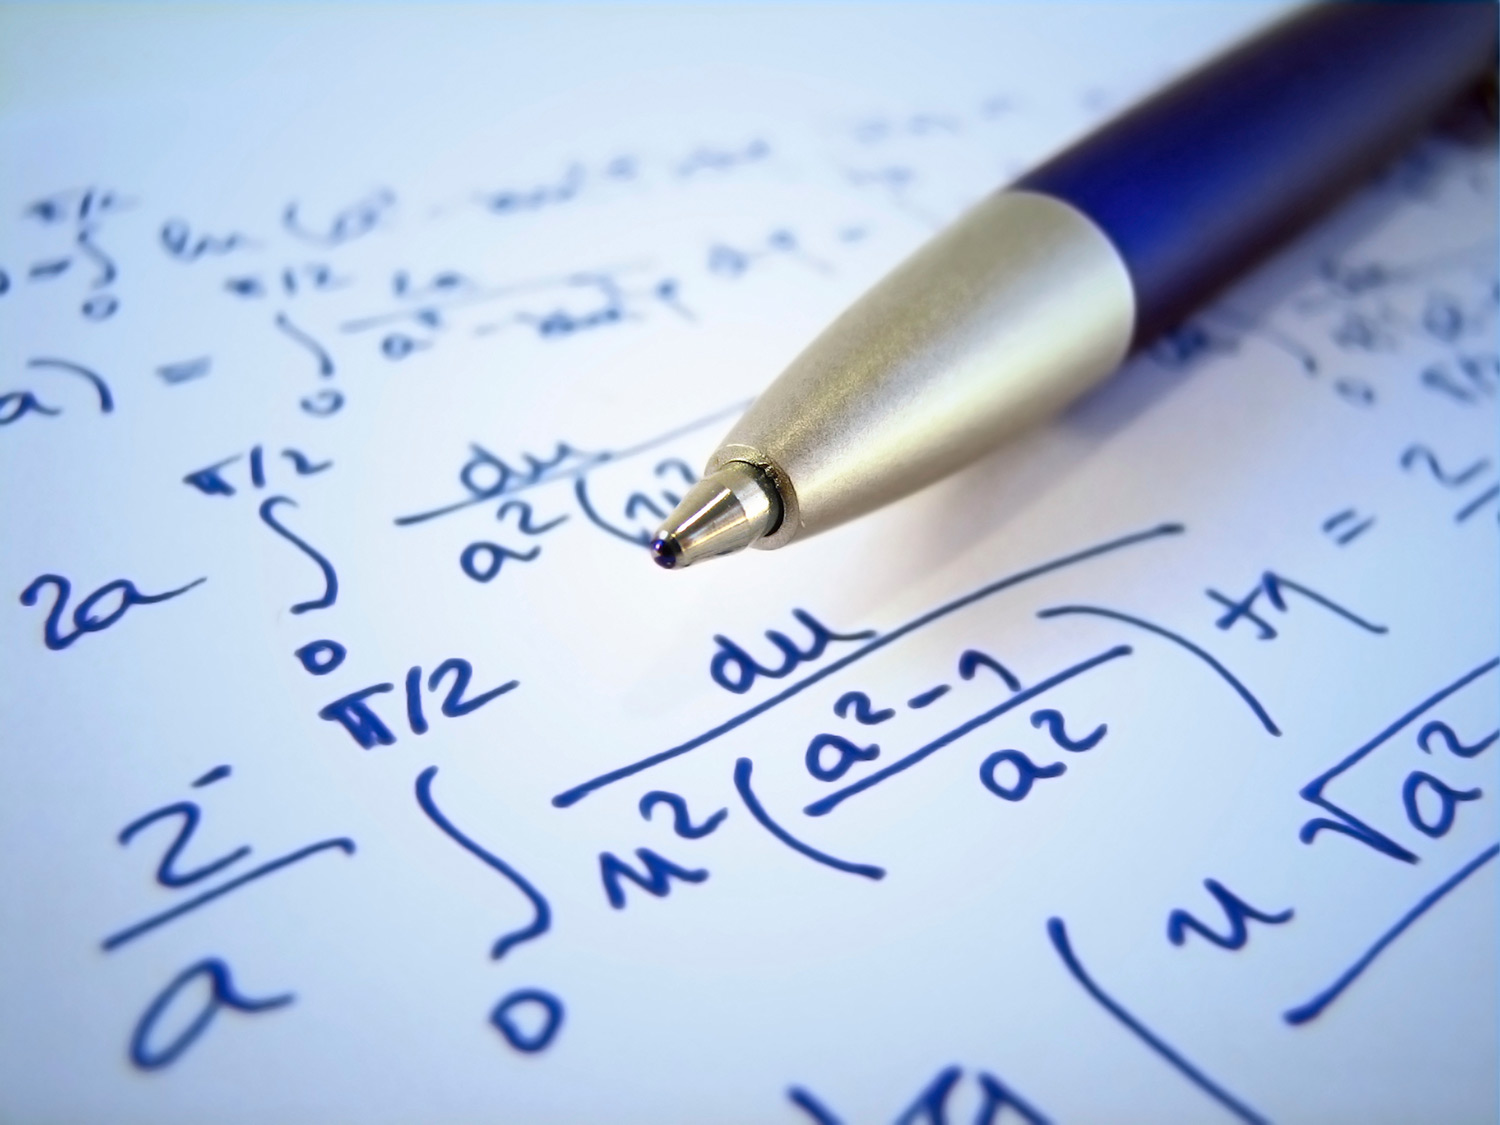 Pen and notebook with math equations